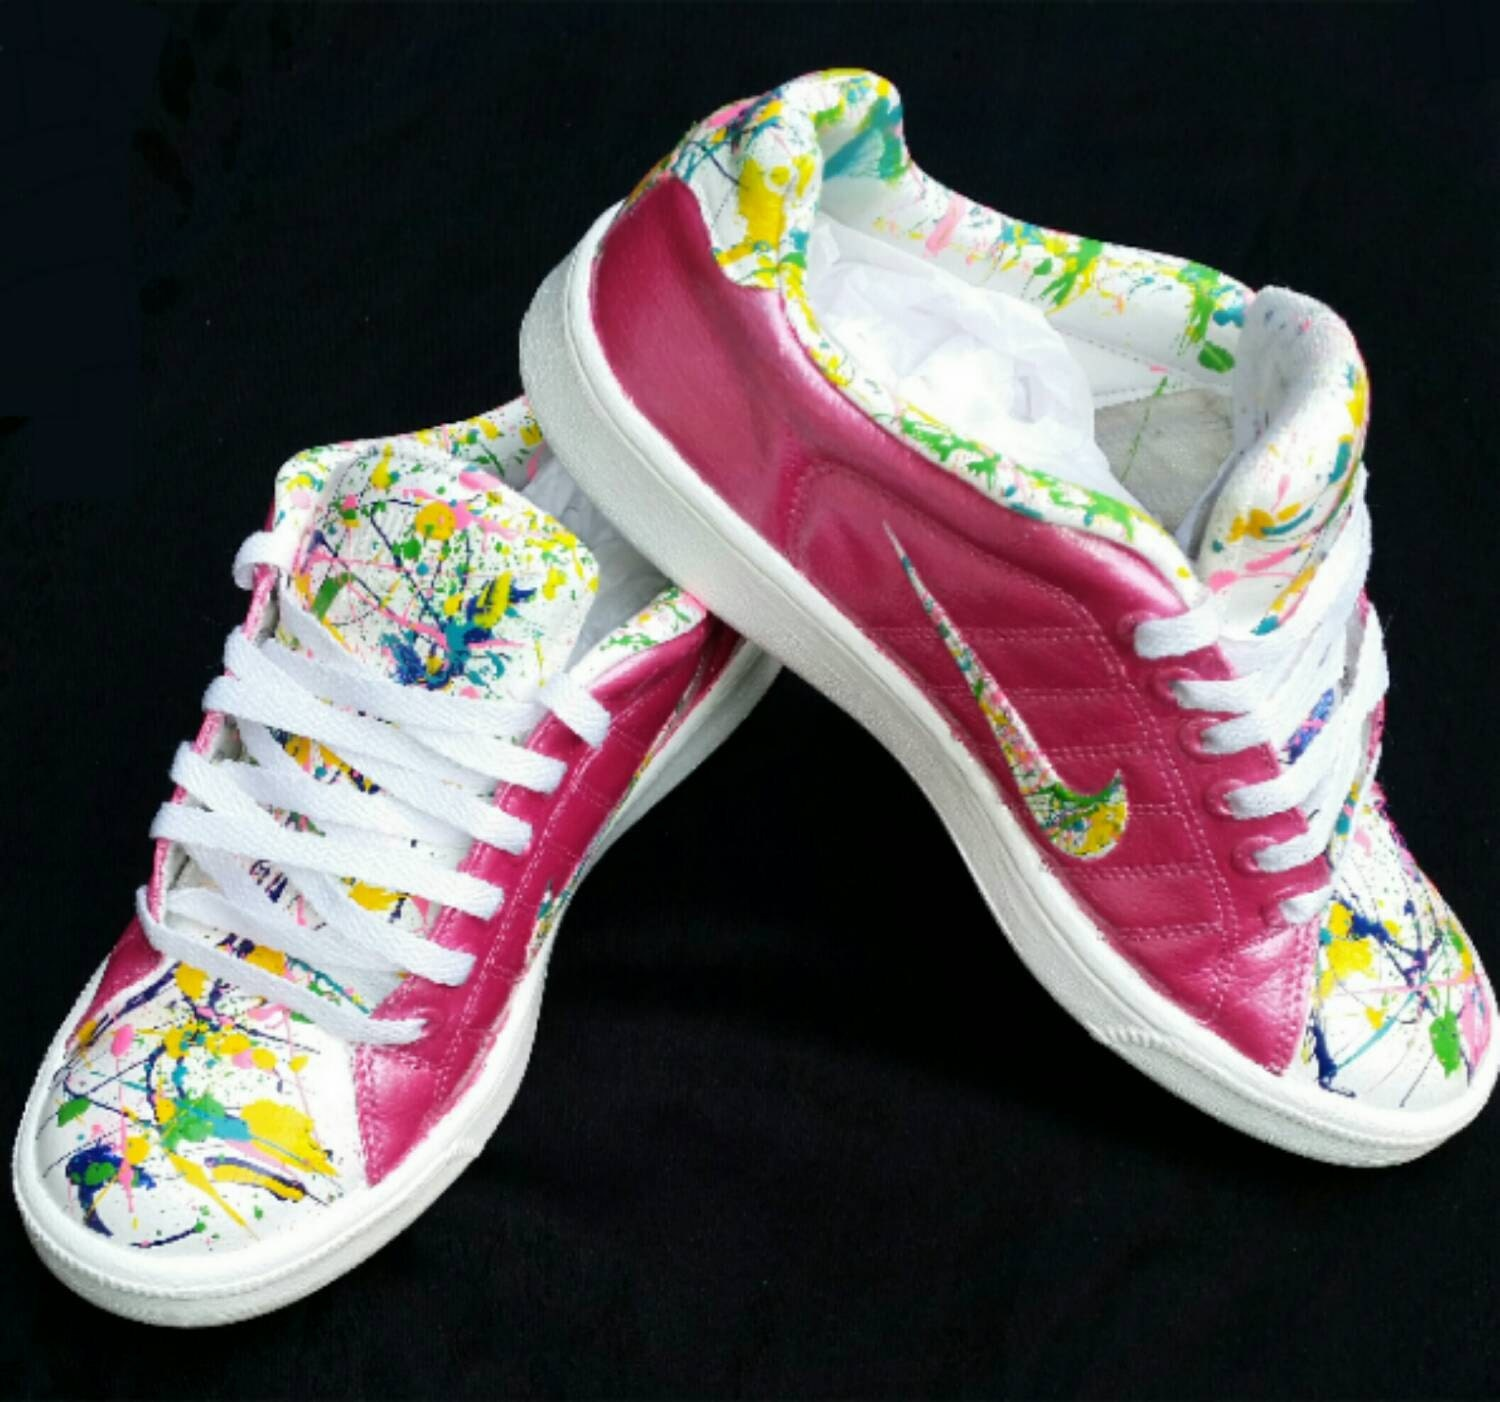 Custom Painted Splatter Painted Nike's Air by DivineUnlimited